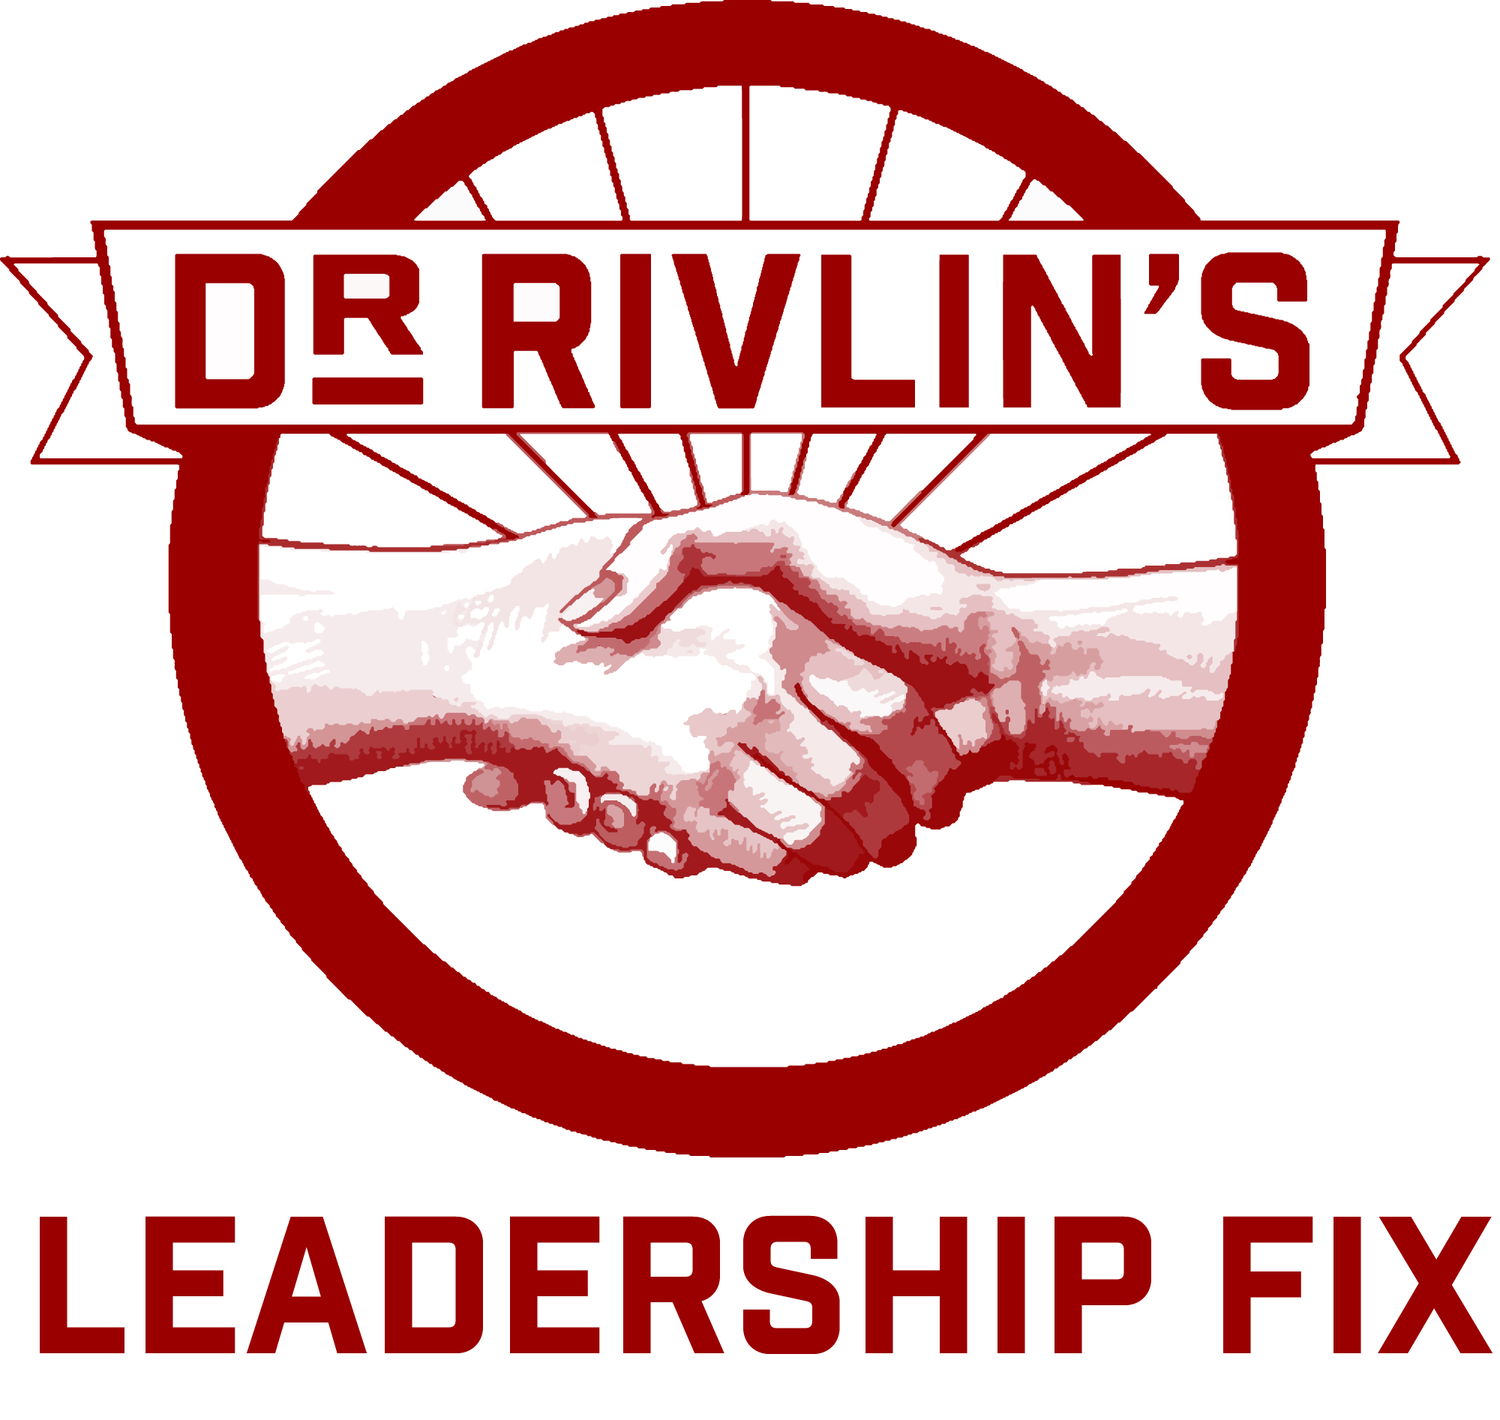 Dr. Rivlin's Leadership Fix